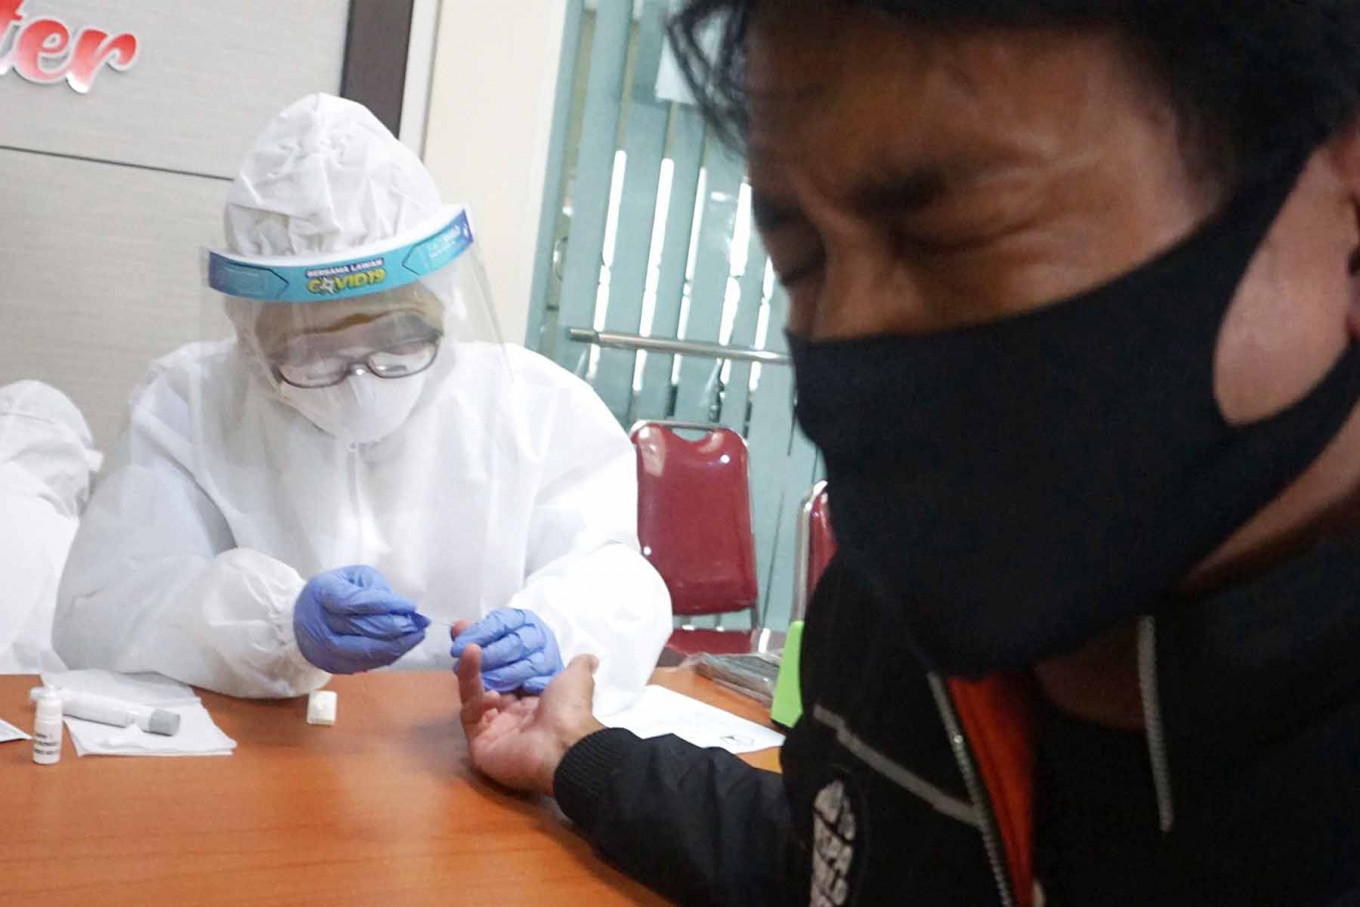 A man closes his eyes as an officer takes his blood sample at the Malang City Health Office in East Java on May 18. The city administration aims to provide rapid tests for those who face a high risk of contracting COVID-19. JP/Nedi Putra A.W.